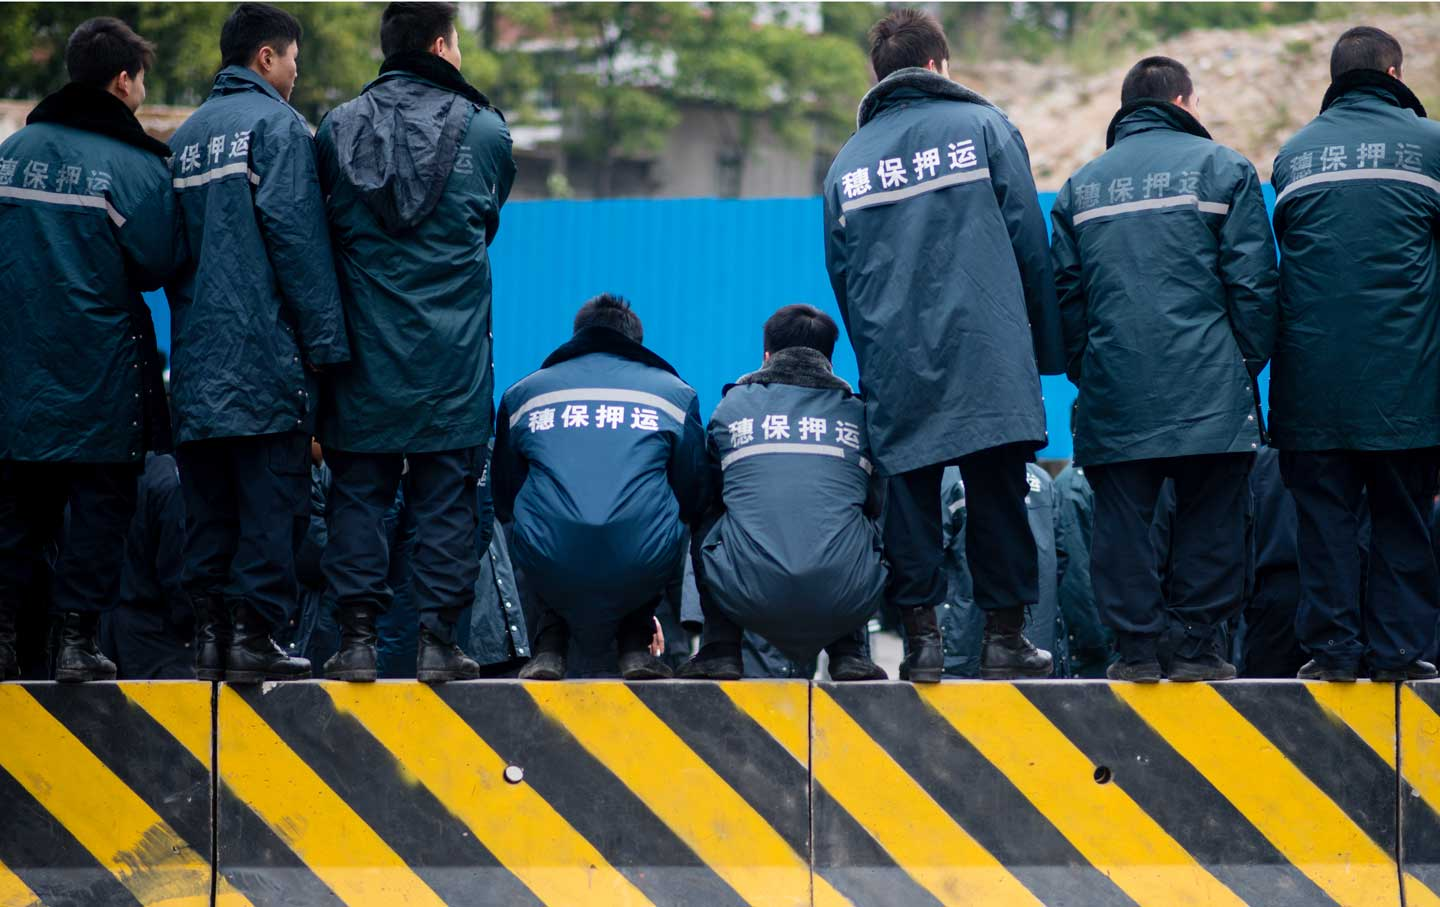 Workers of Sui Bao Security Transport Company strike for higher salaries, blocking a road in Guangzhou, China, February 11, 2014.